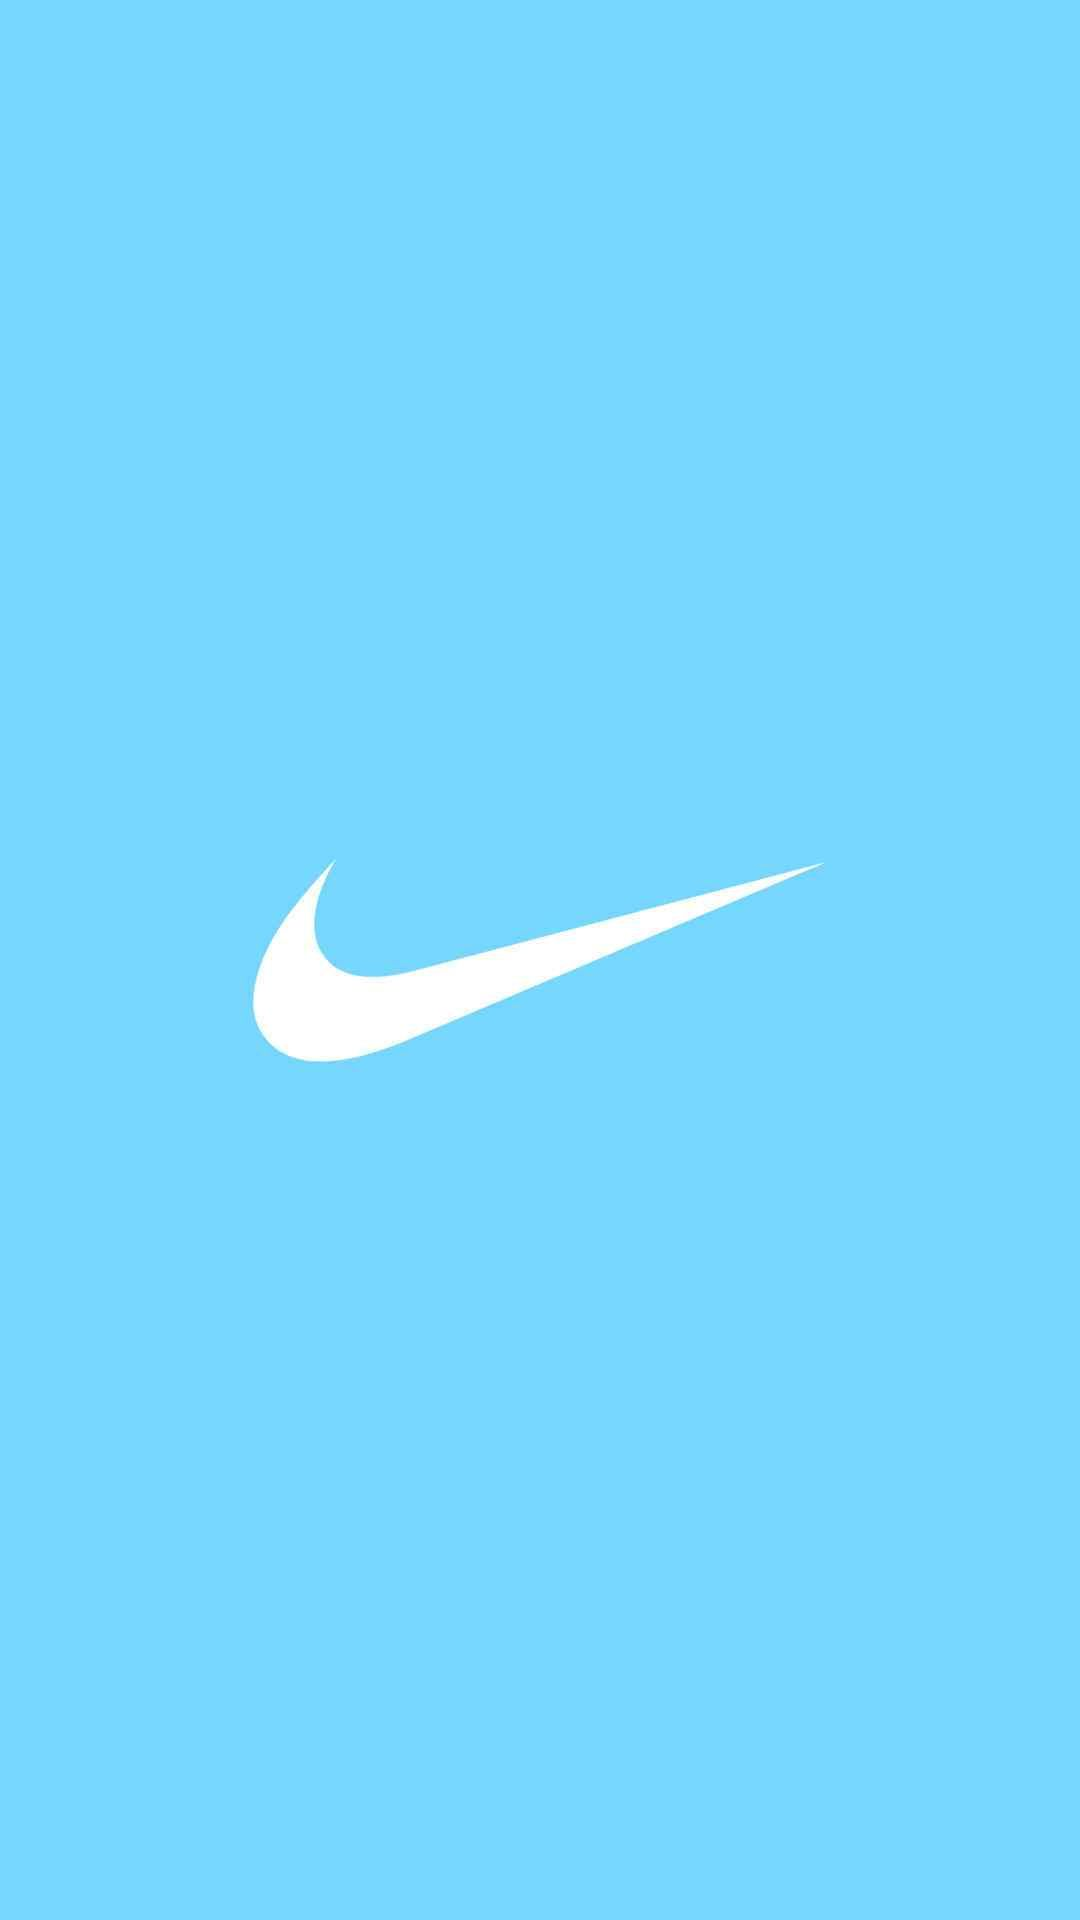 NIKE Logo iPhone Wallpaper … かわいい 壁紙 iphone, ロゴ 壁紙